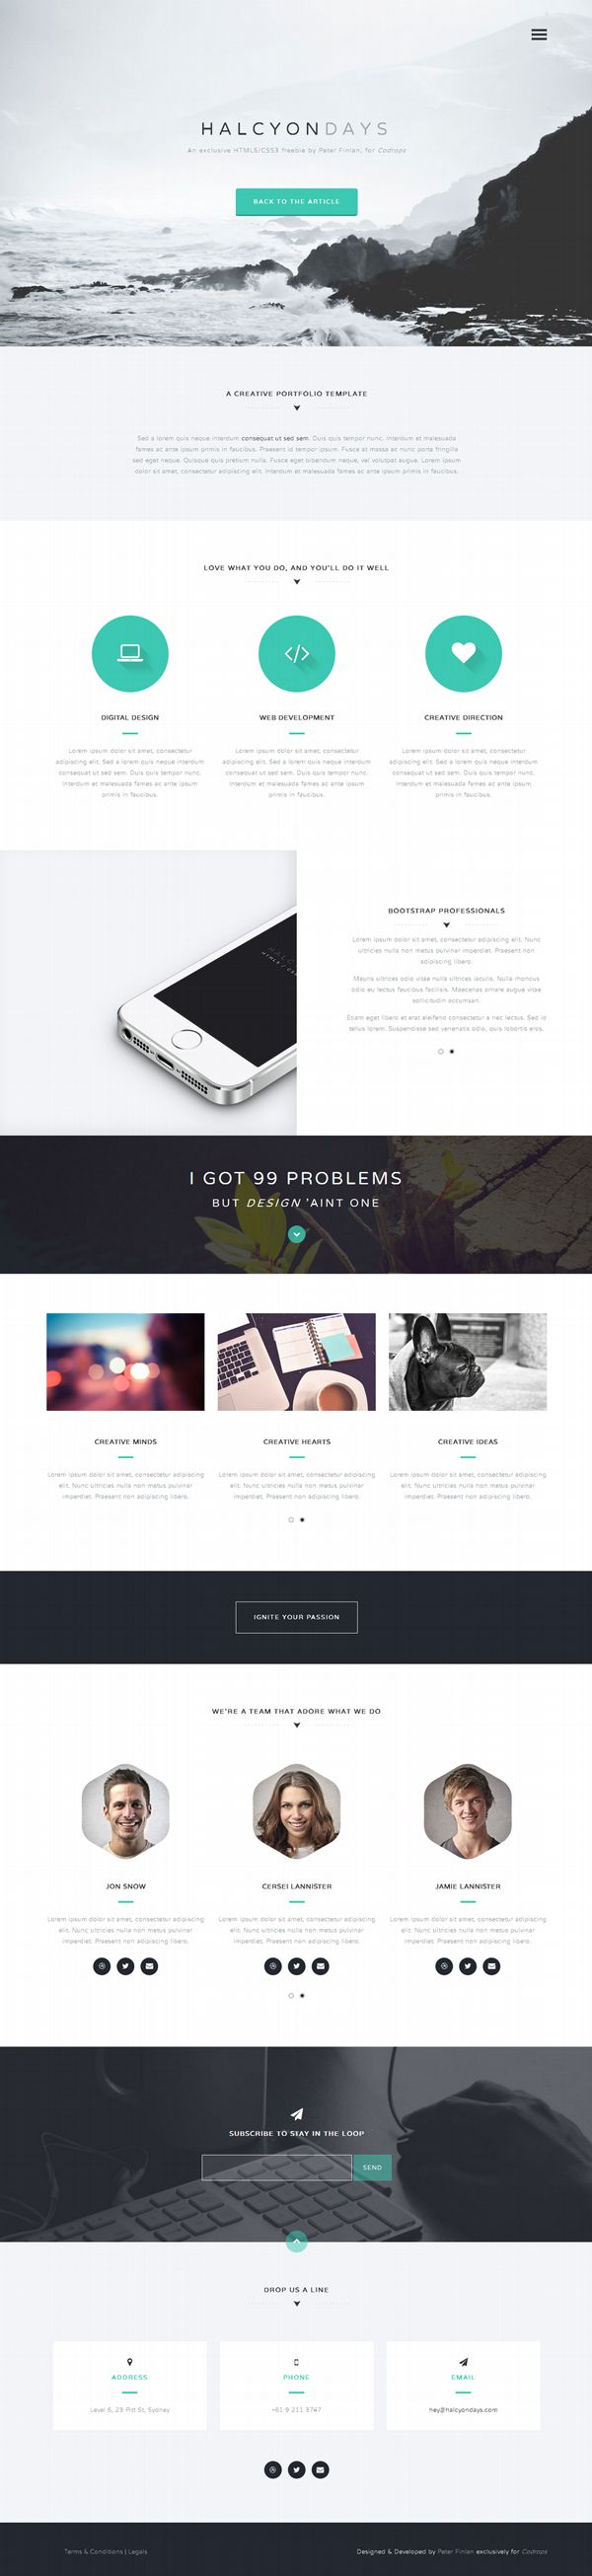 223 best HTML5 and CSS3 images on Pinterest | Info graphics, Web ...